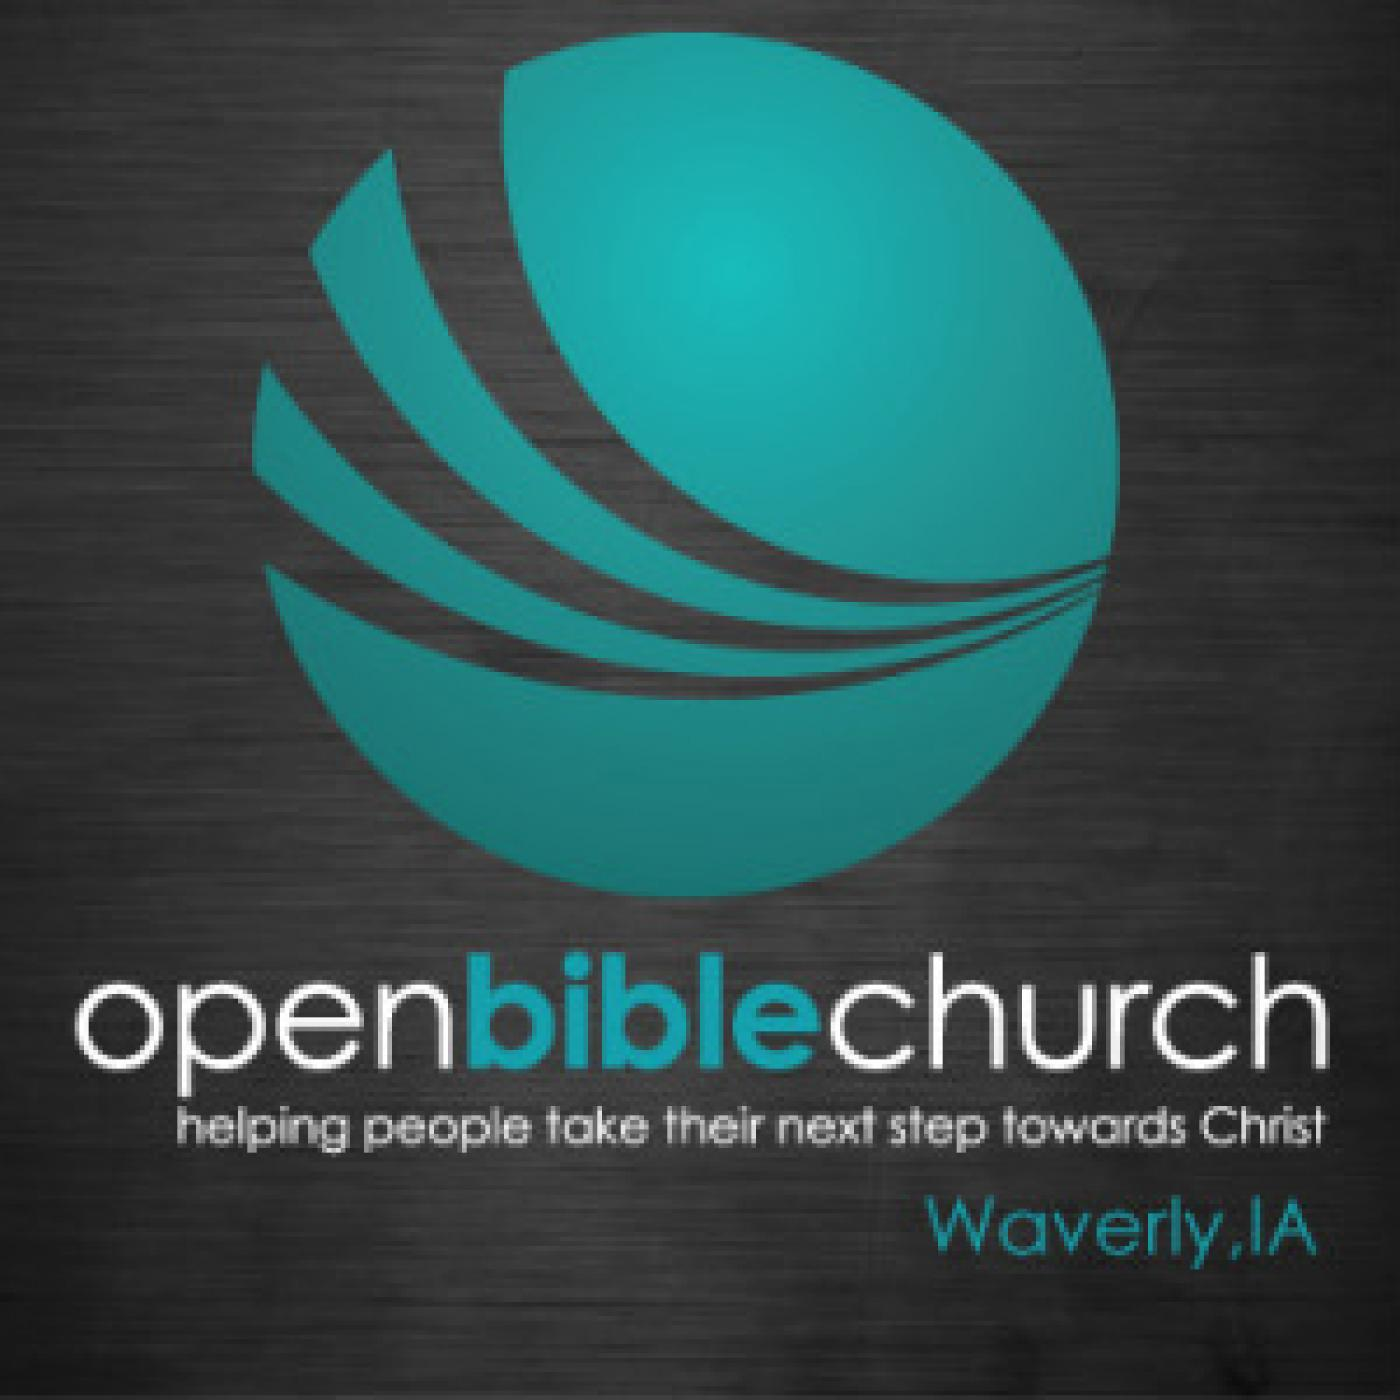 Open Bible Church - Waverly, IA